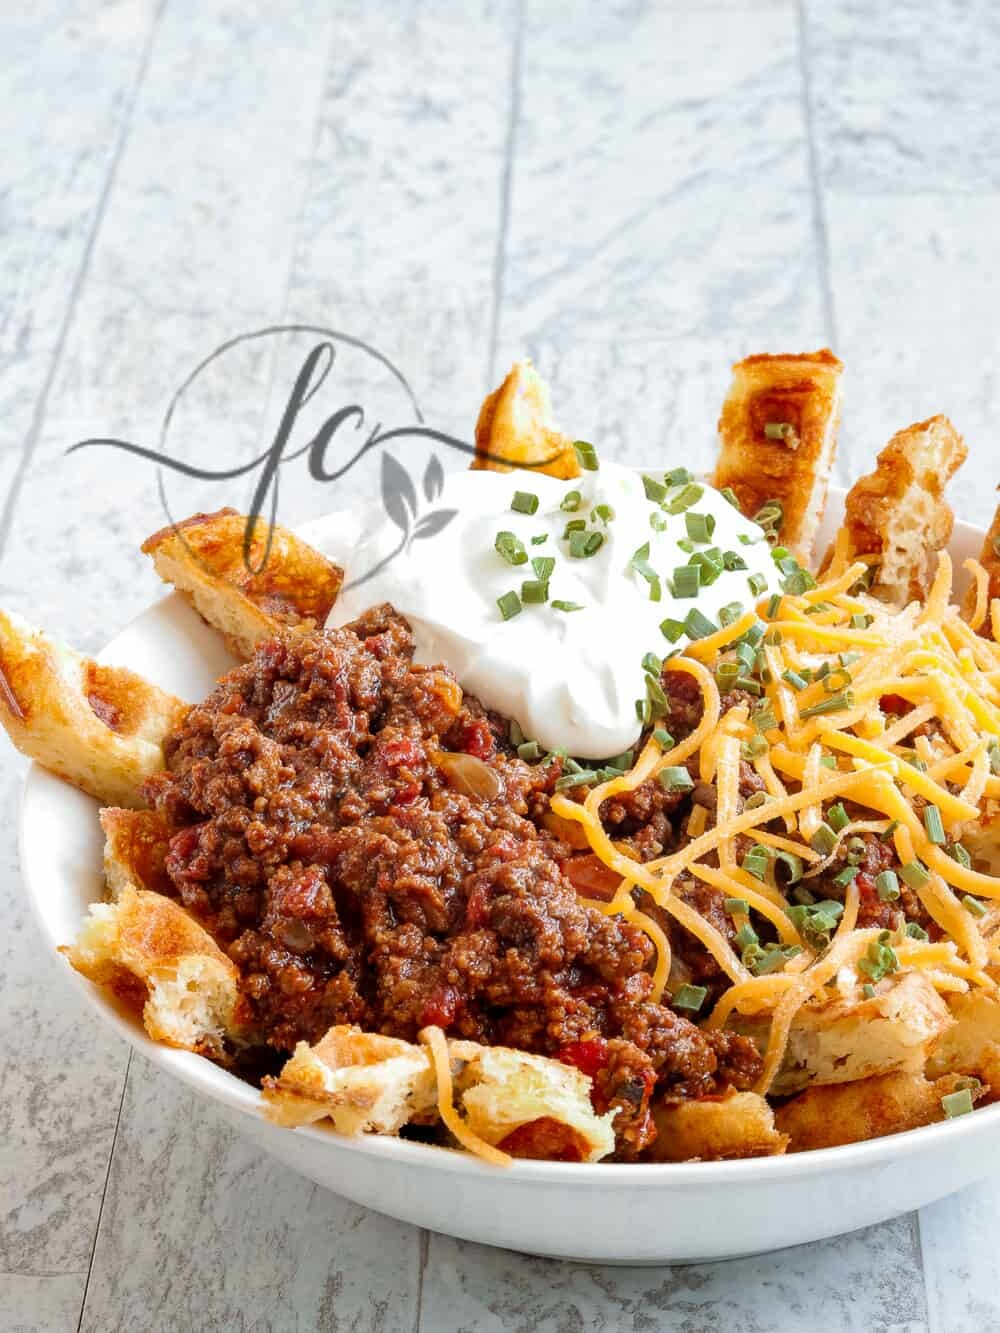 Low Carb, Keto Chili Cheese Fries